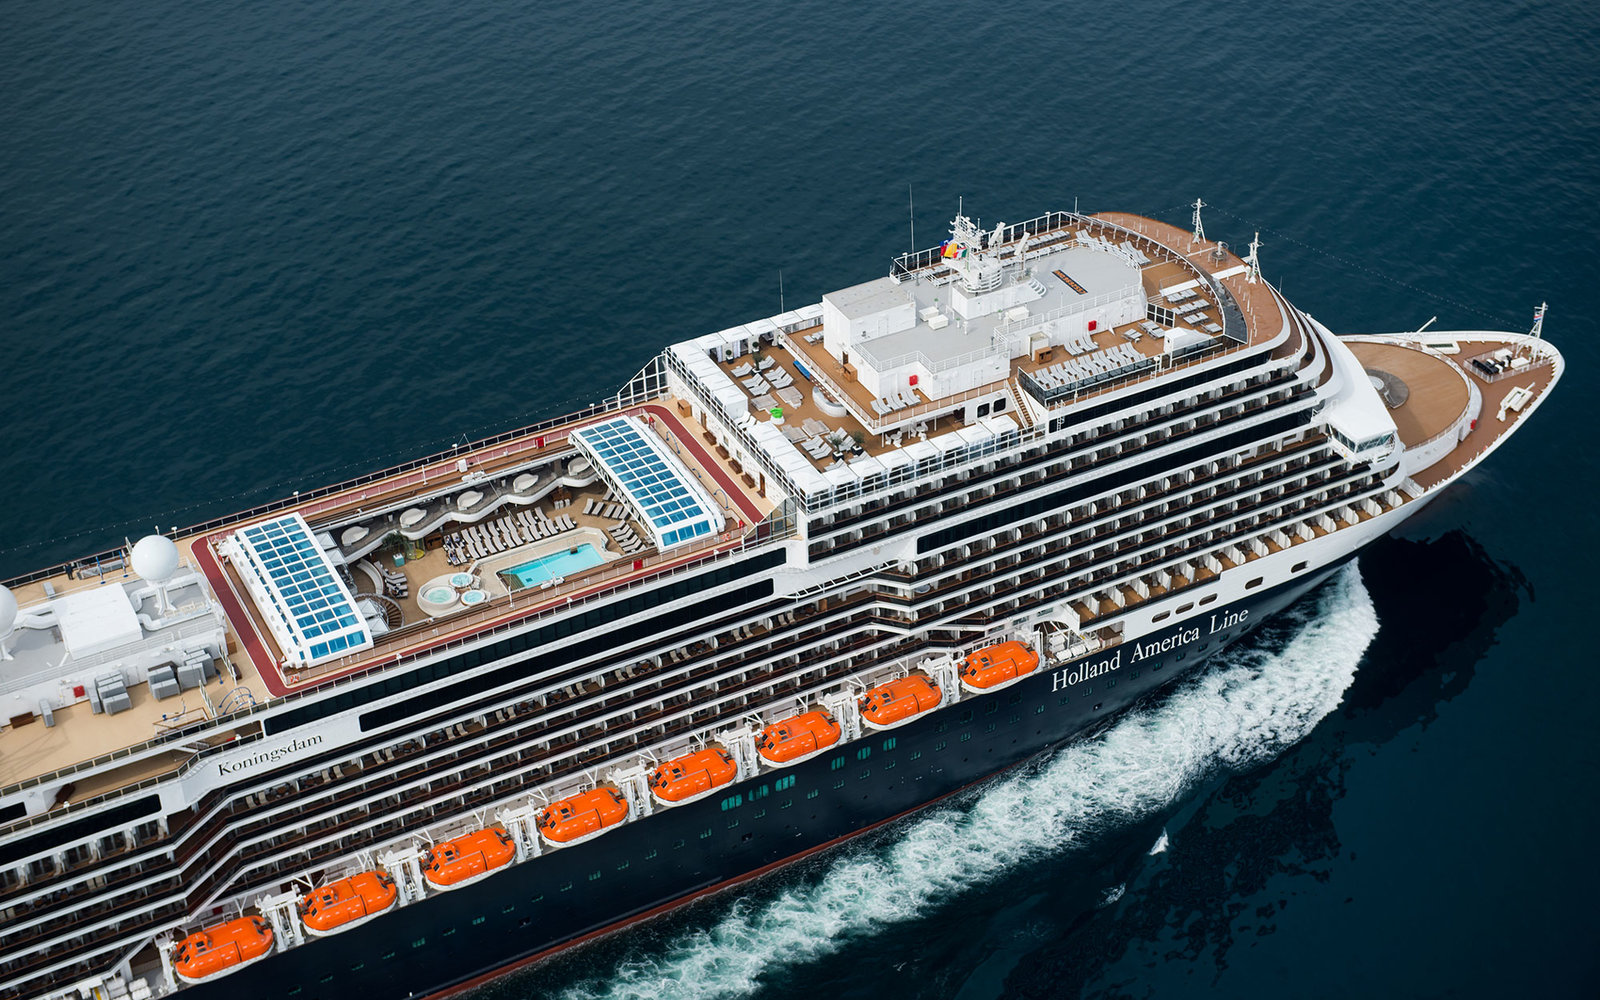 Best cruise line for adults